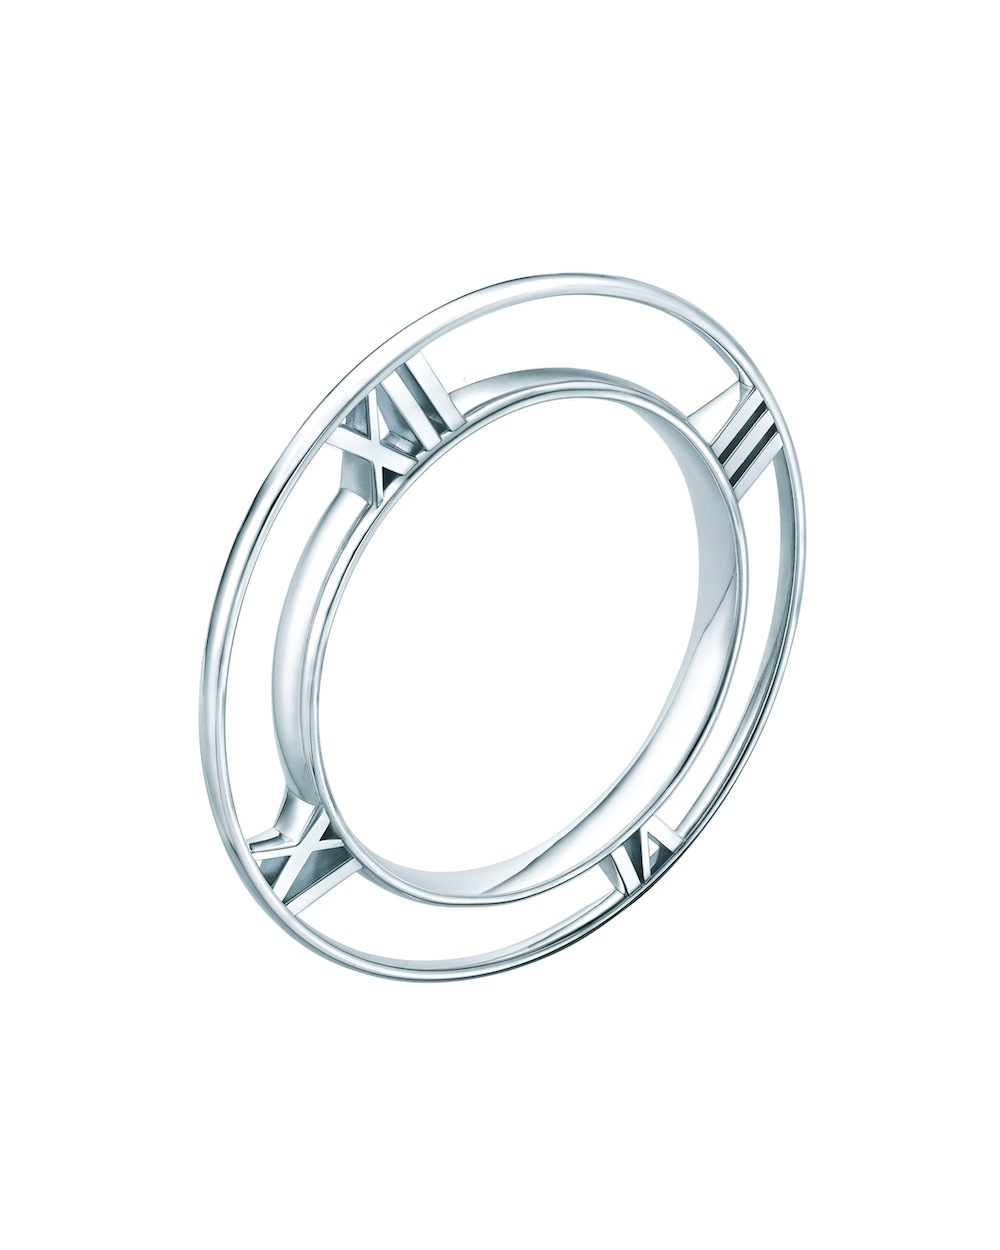 Atlas tapered bangle in sterling silver, $850